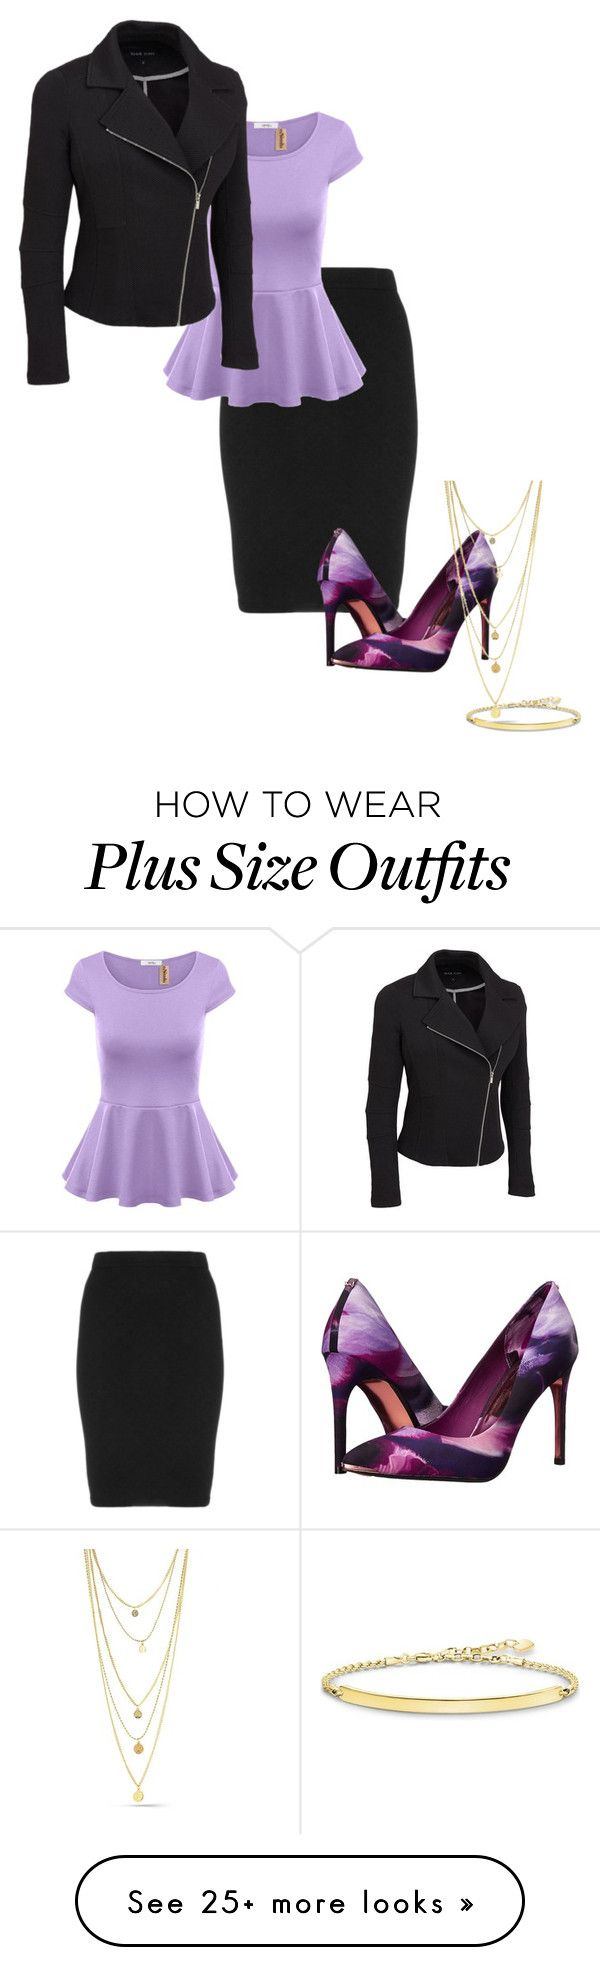 """Lil"" by lavinia-goddard on Polyvore featuring Manon Baptiste, Ted Baker, Thomas Sabo, styling and plus size clothing"